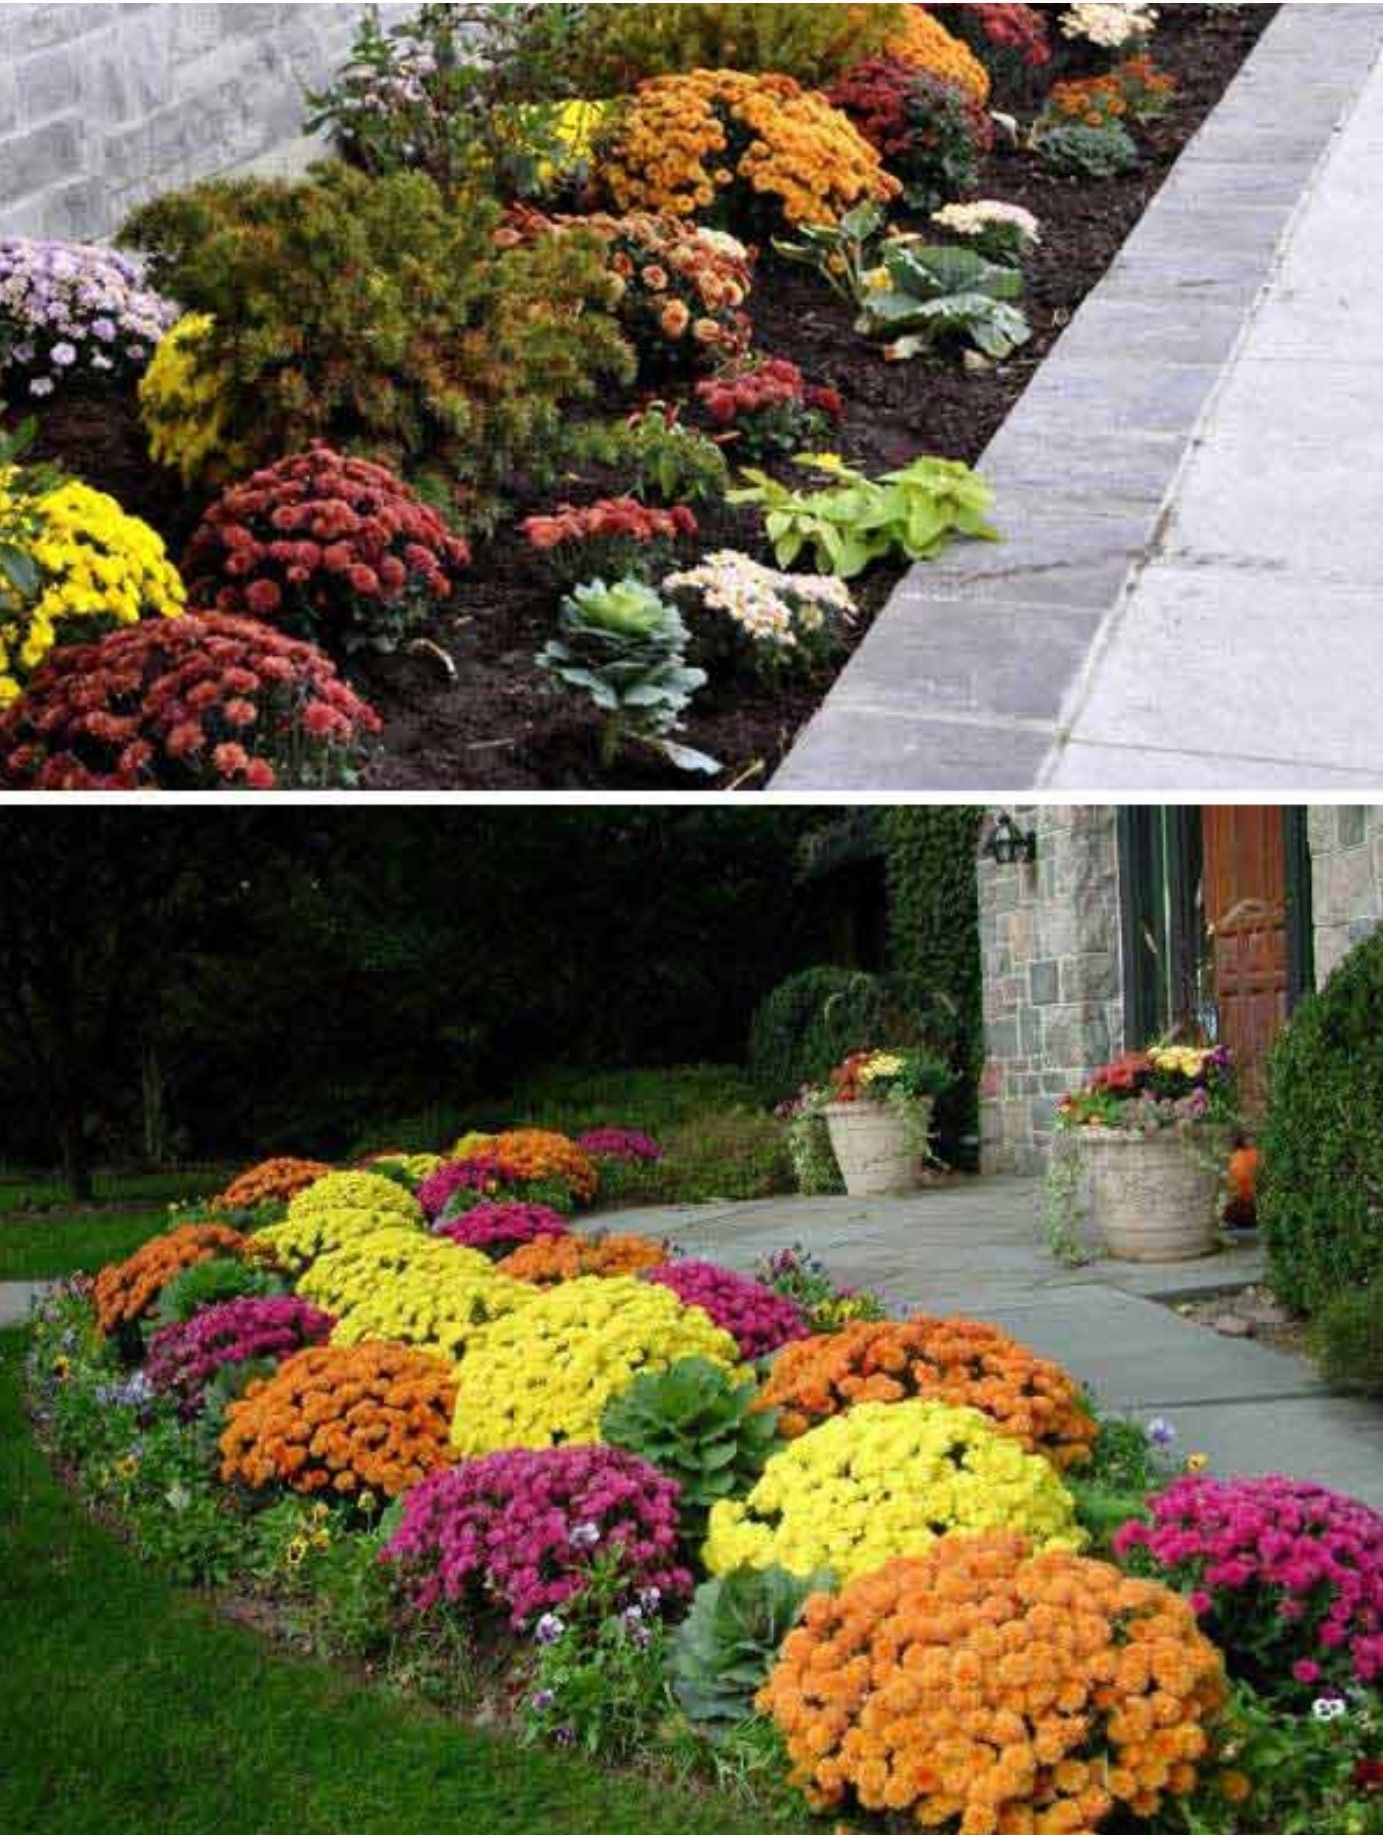 Plant mums, pansies and kale for the fall season